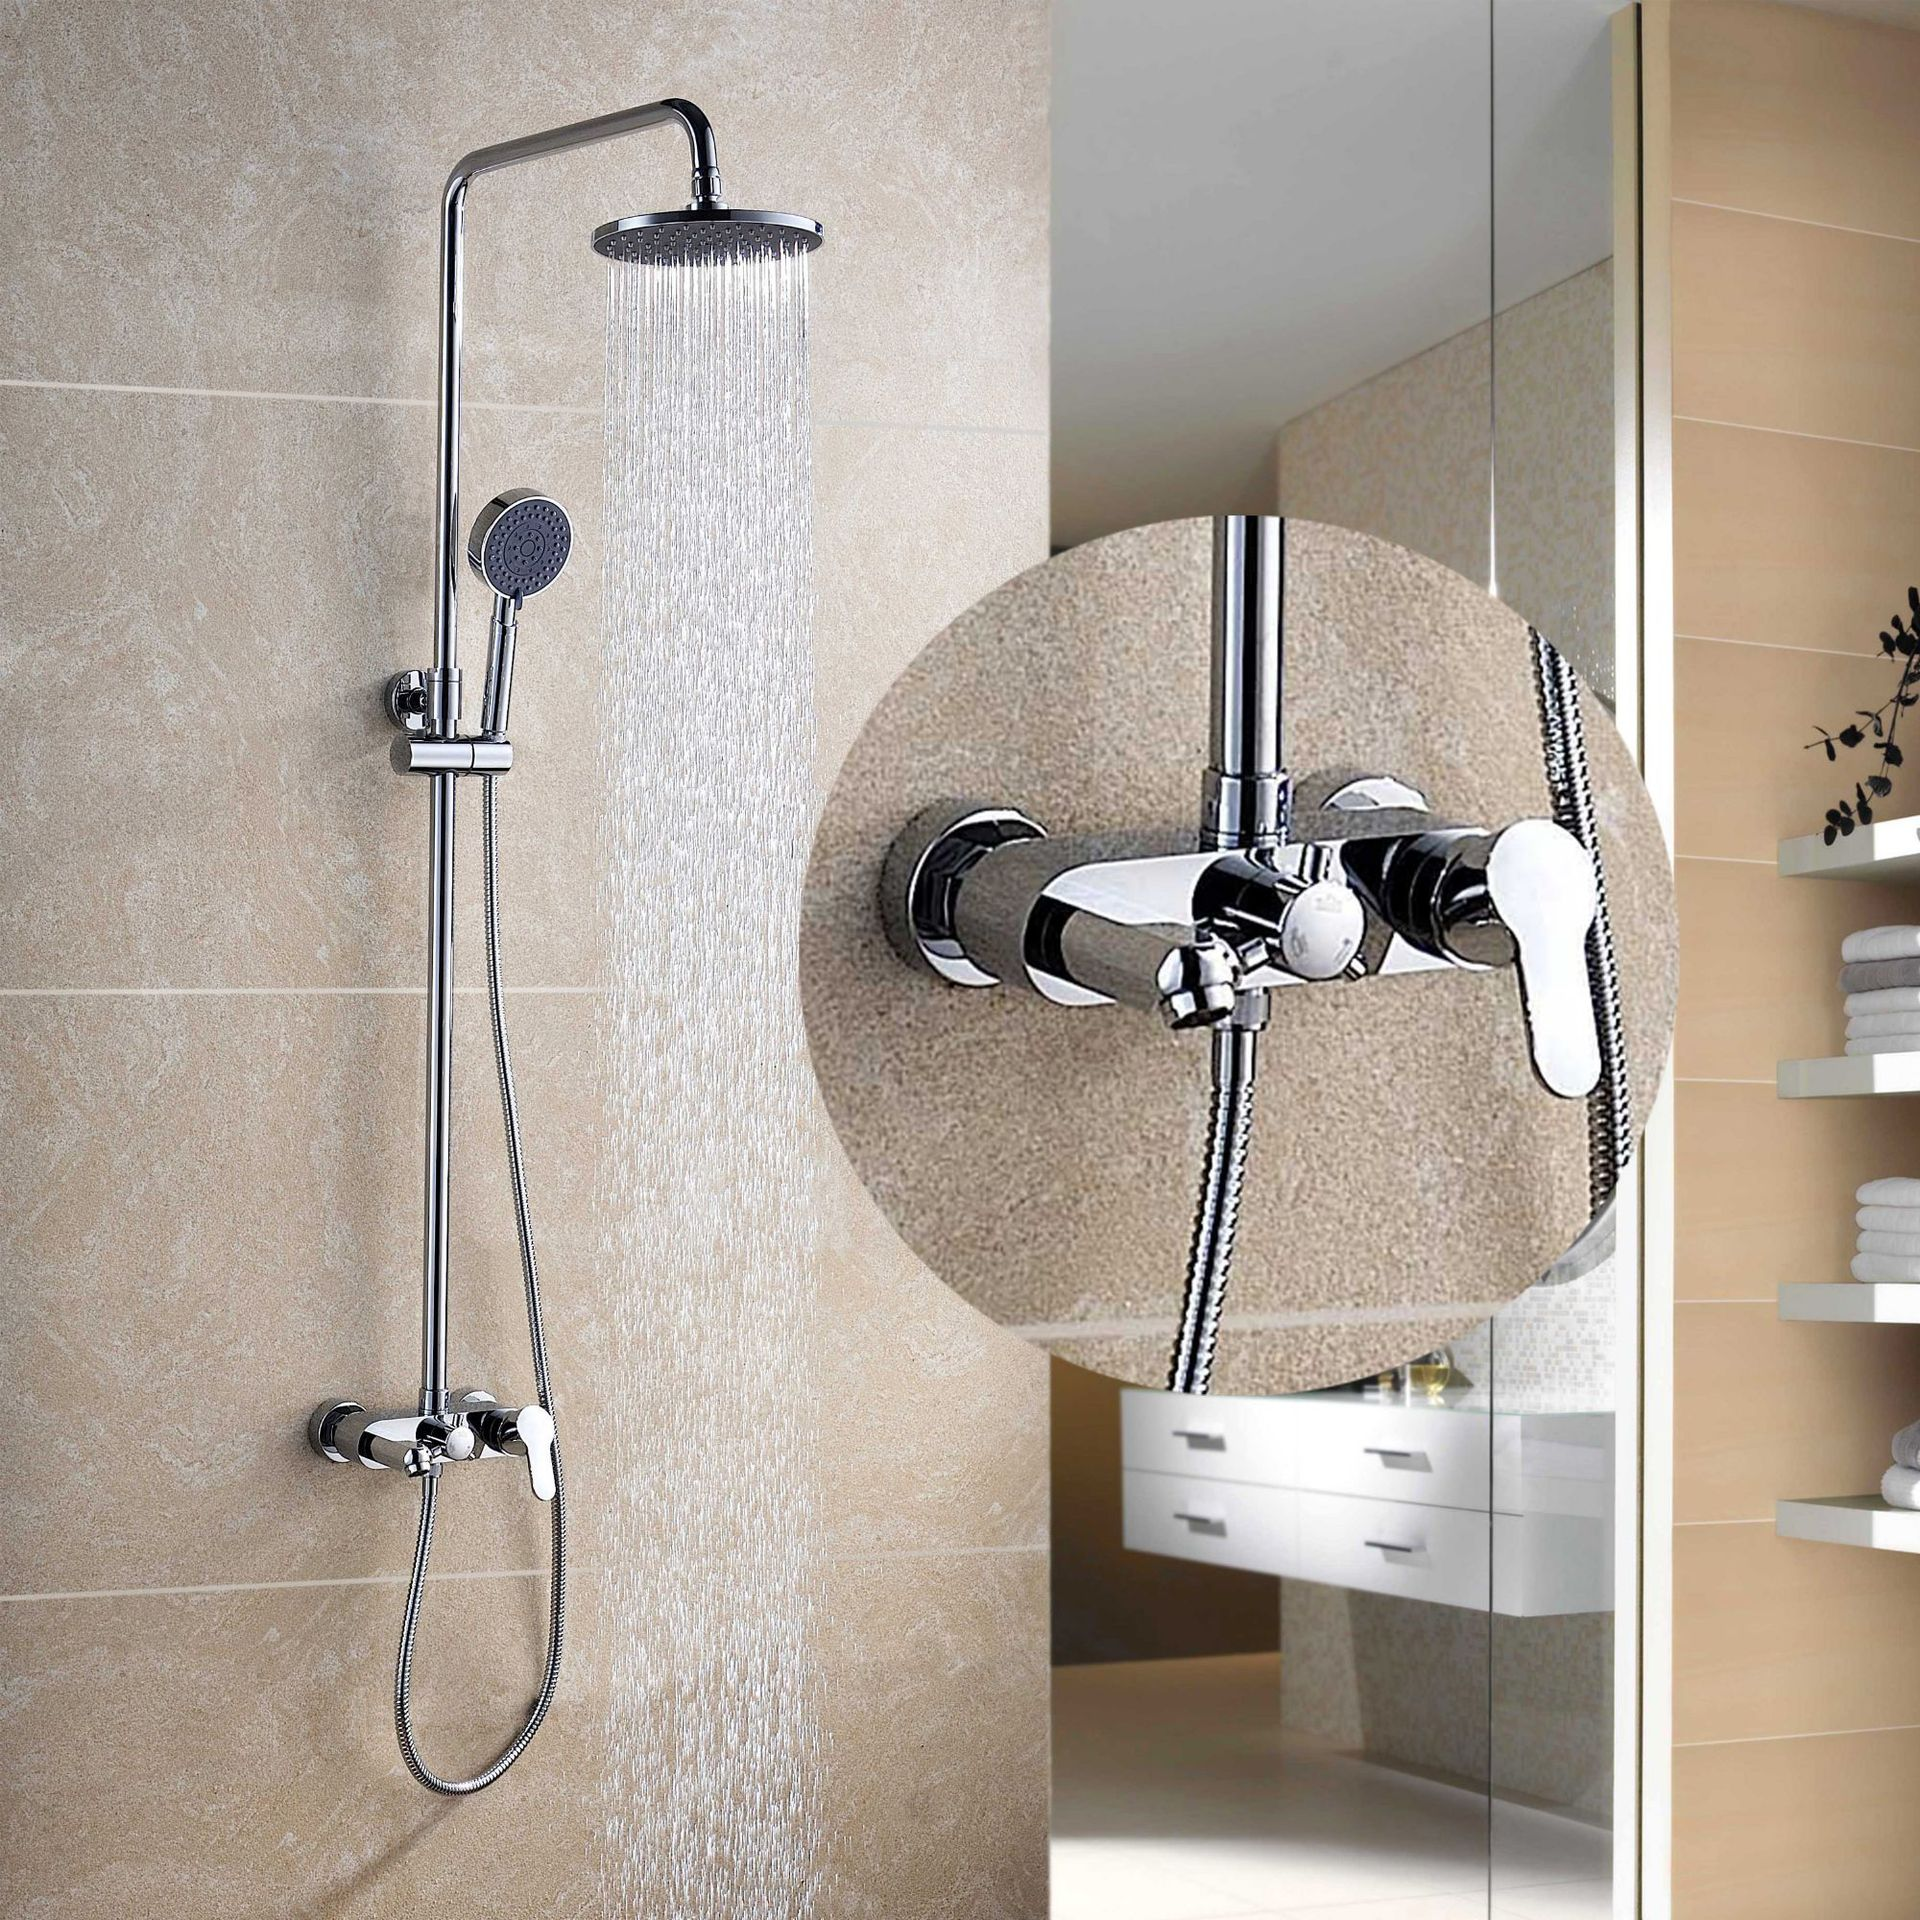 Manufacturers selling all copper lift shower hot and cold shower set DS33011 supercharged shower faucetManufacturers selling all copper lift shower hot and cold shower set DS33011 supercharged shower faucet